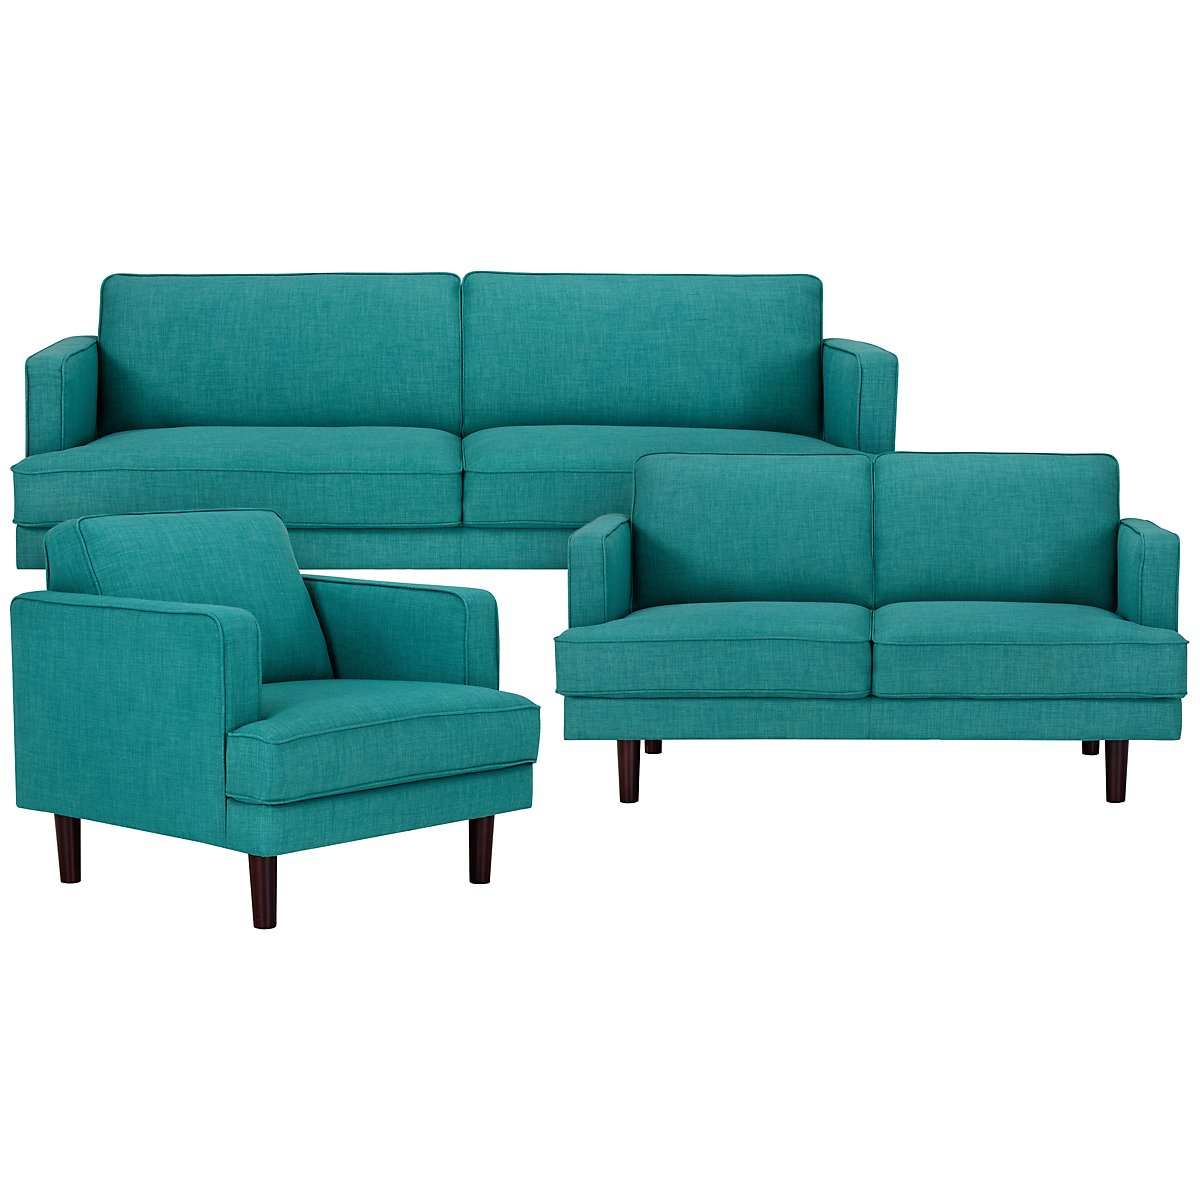 Teal Living Room City Furniture Bliss Teal Living Room